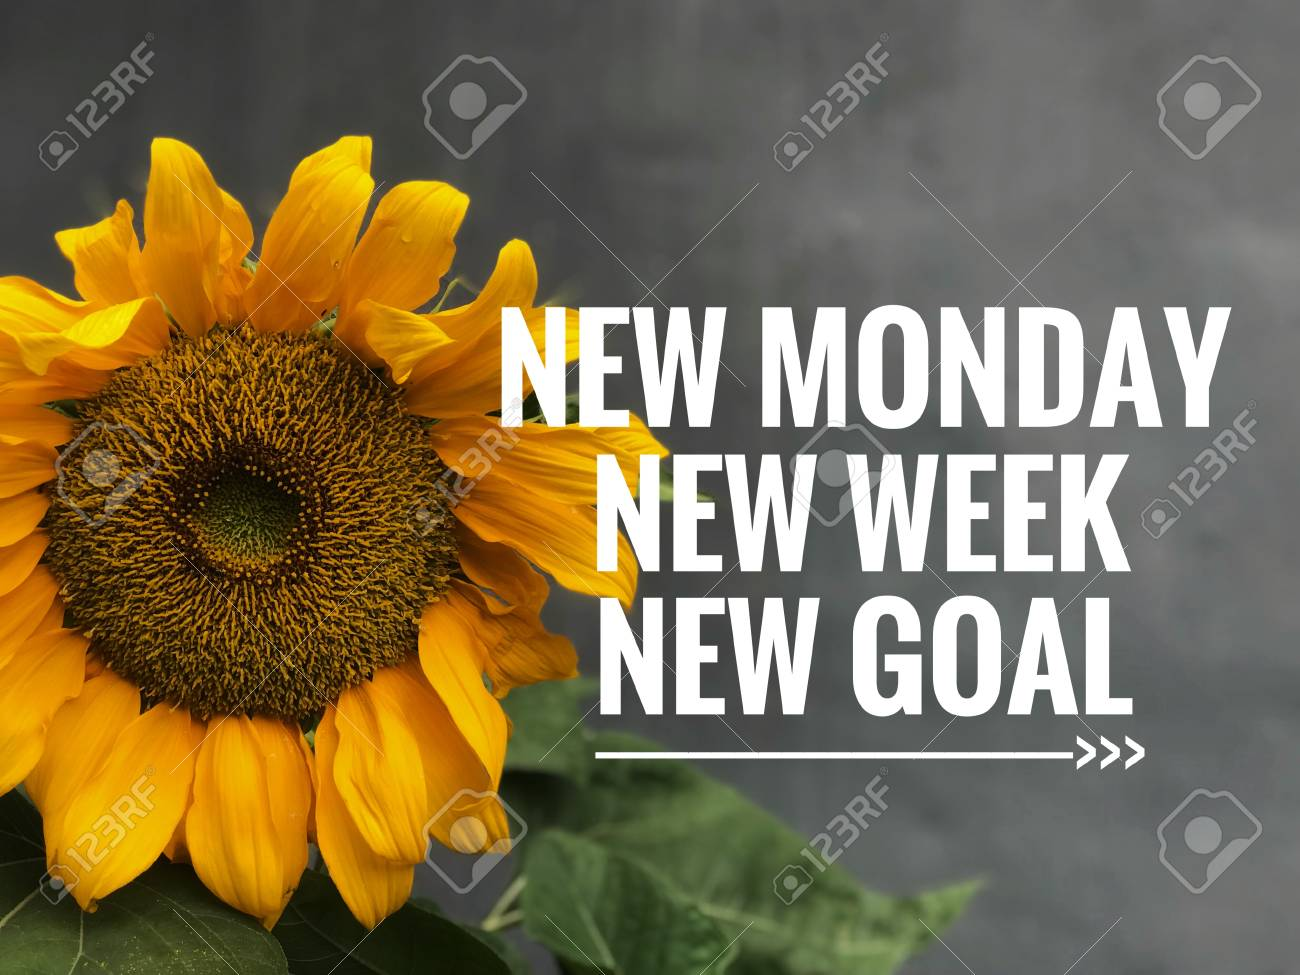 Motivational and inspirational quotes - New Monday, new week,..